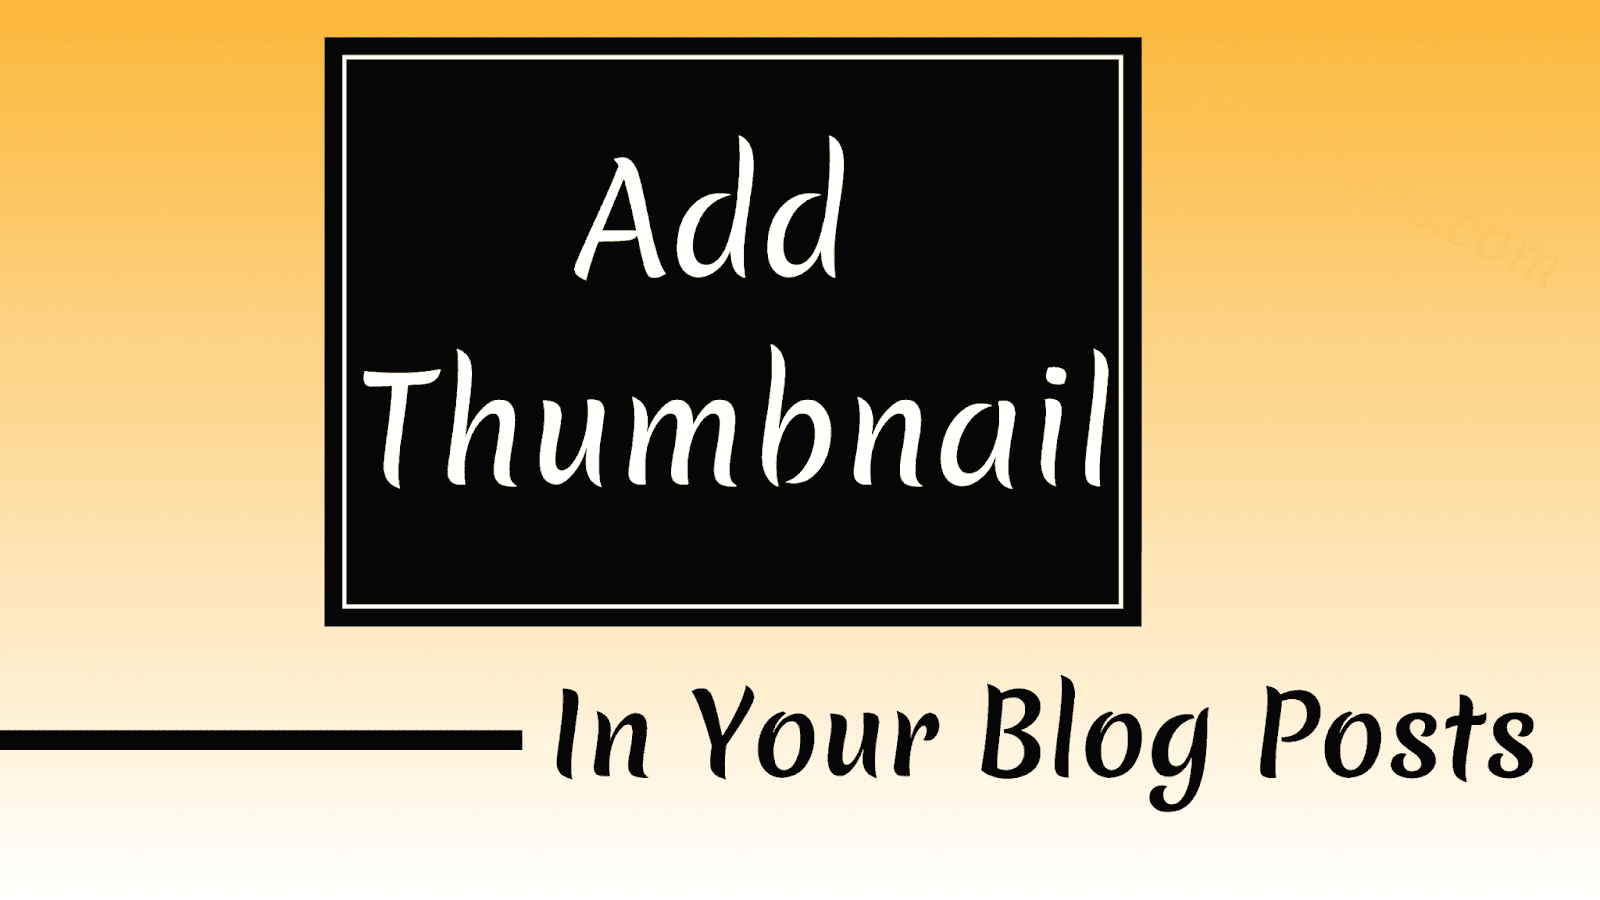 How-to-add-a-thumbnail in-blogger-easily